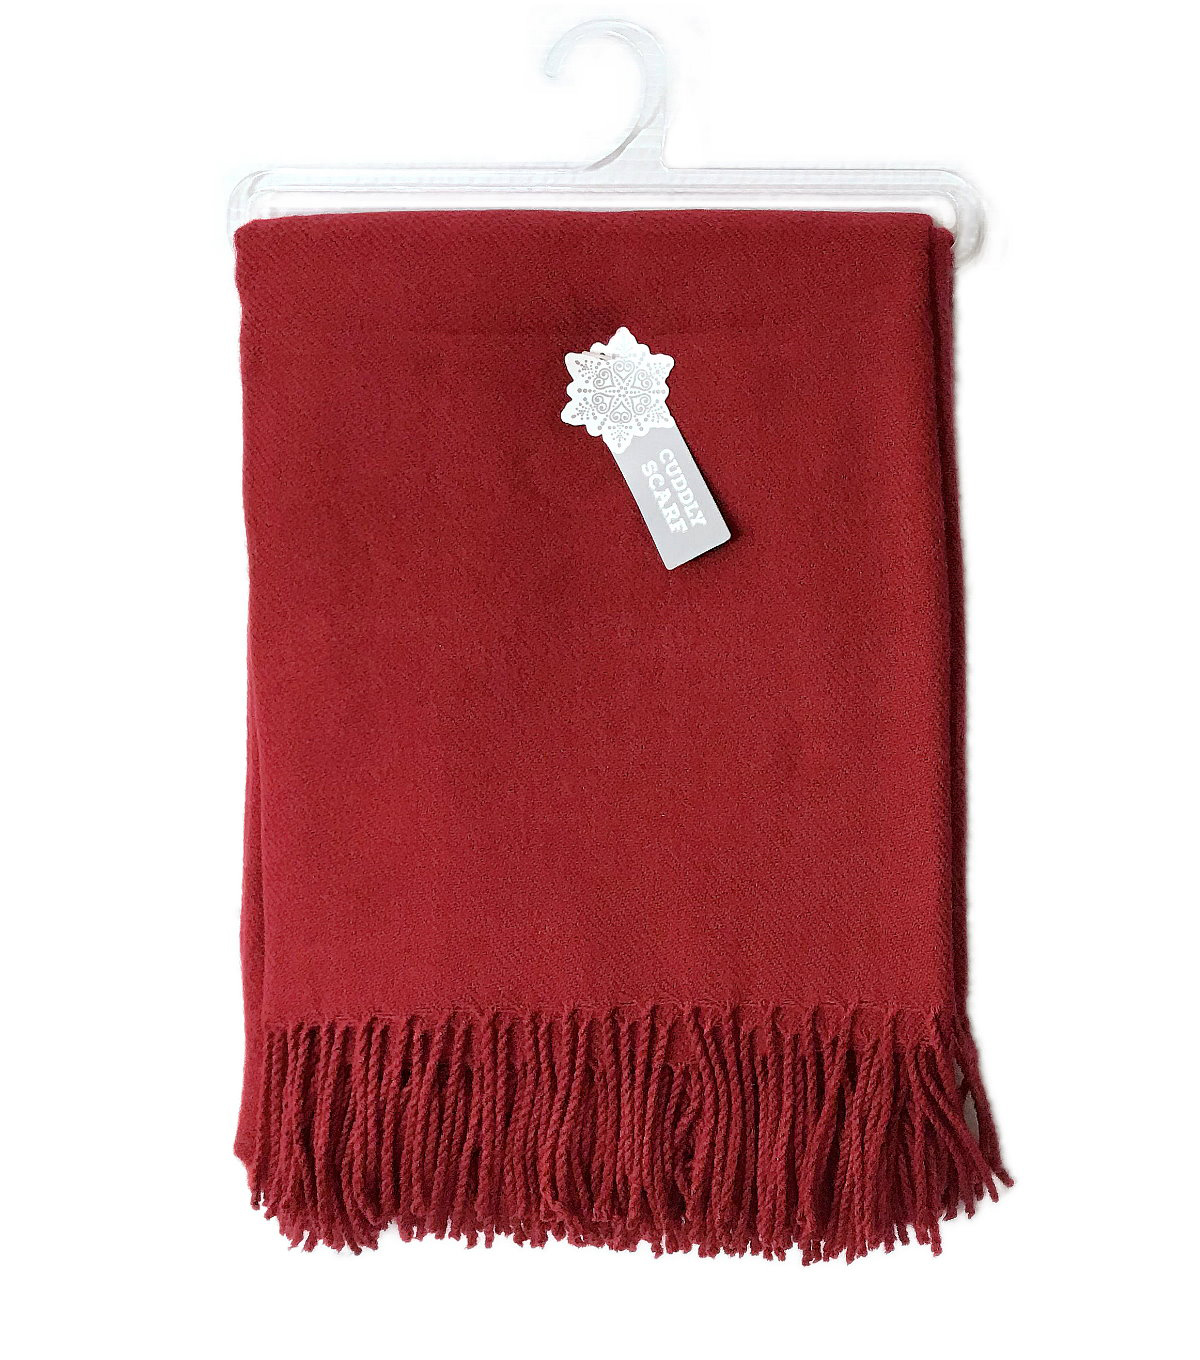 Christmas Cuddly Blanket Scarf-Red Solid